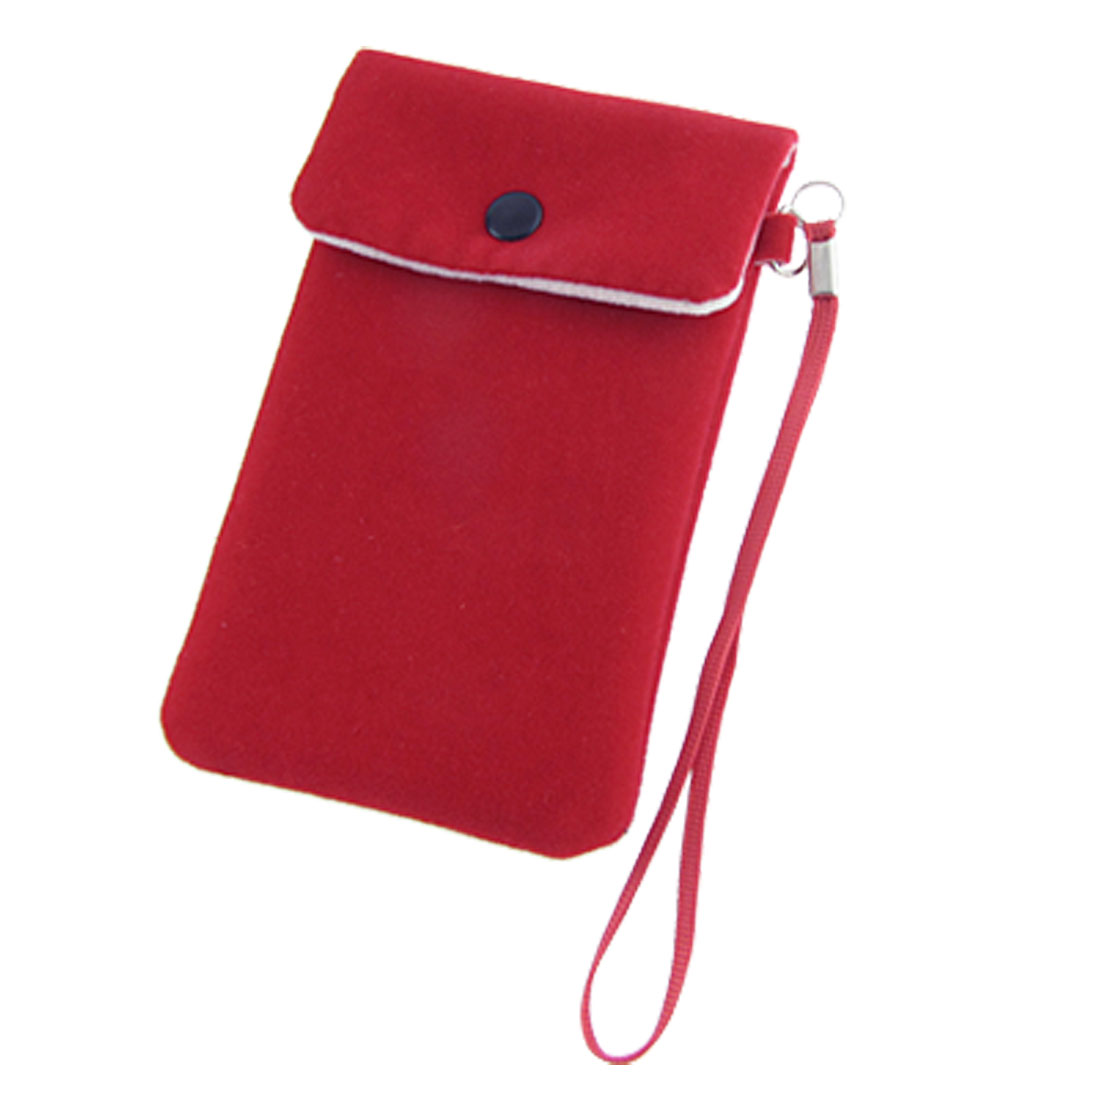 Flap Pouch Red Soft Flannel Bag Holder for iPhone 4 4G